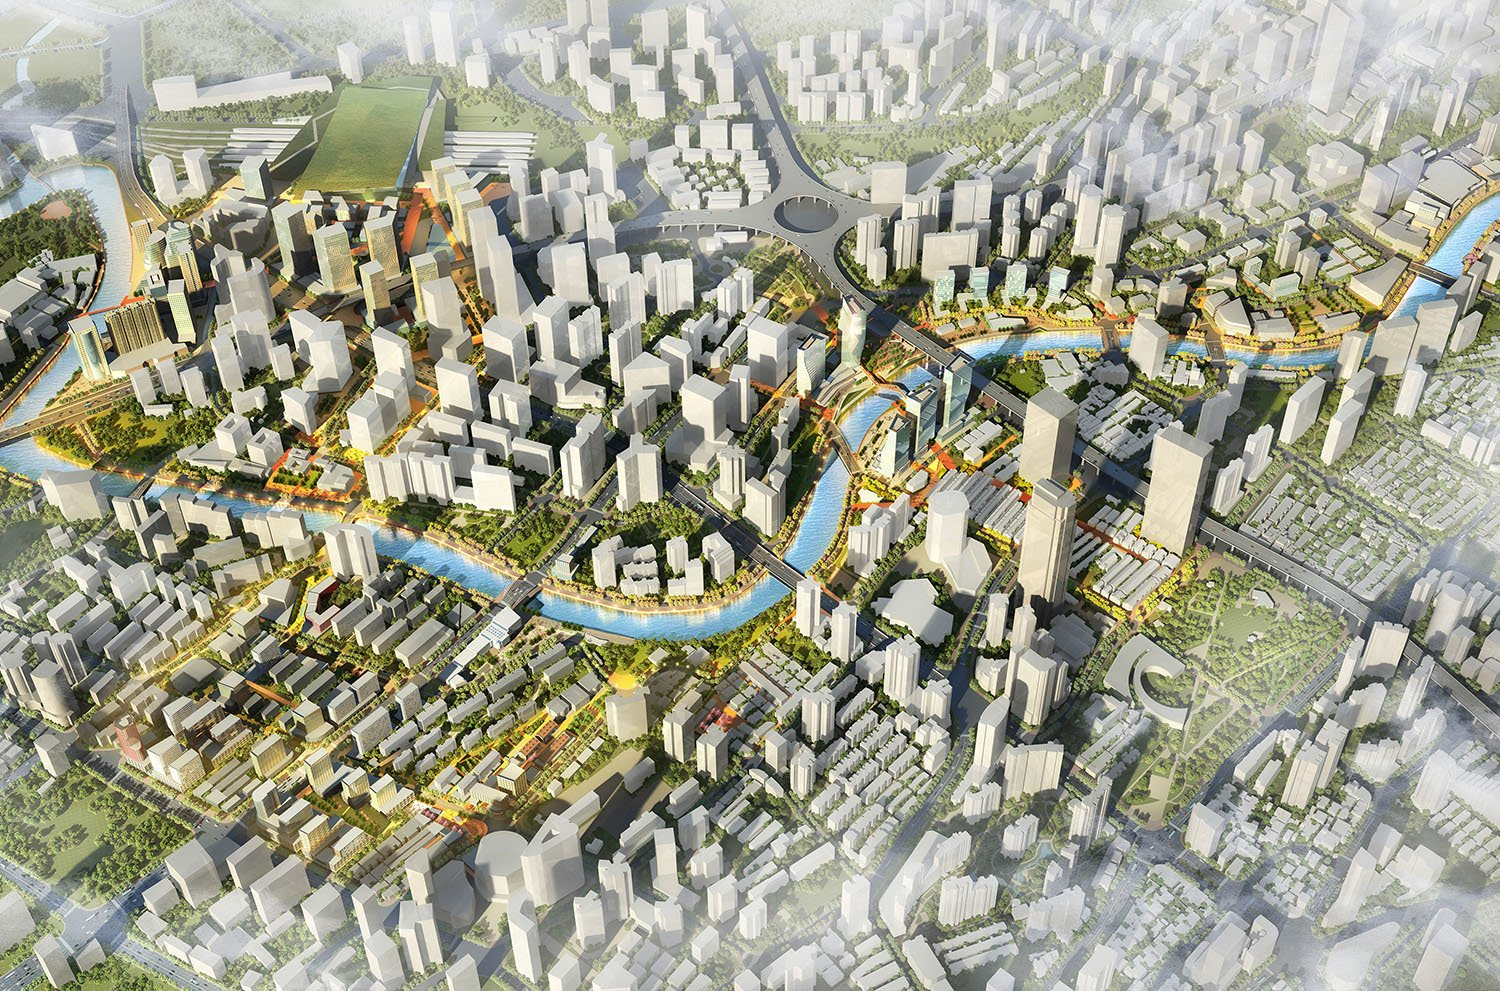 Shanghai's Newest Waterfront: The meandering Suzhou Creek intertwines with a new undulating urban spine, delineating a series of urban and recreational nodes along the riverfront